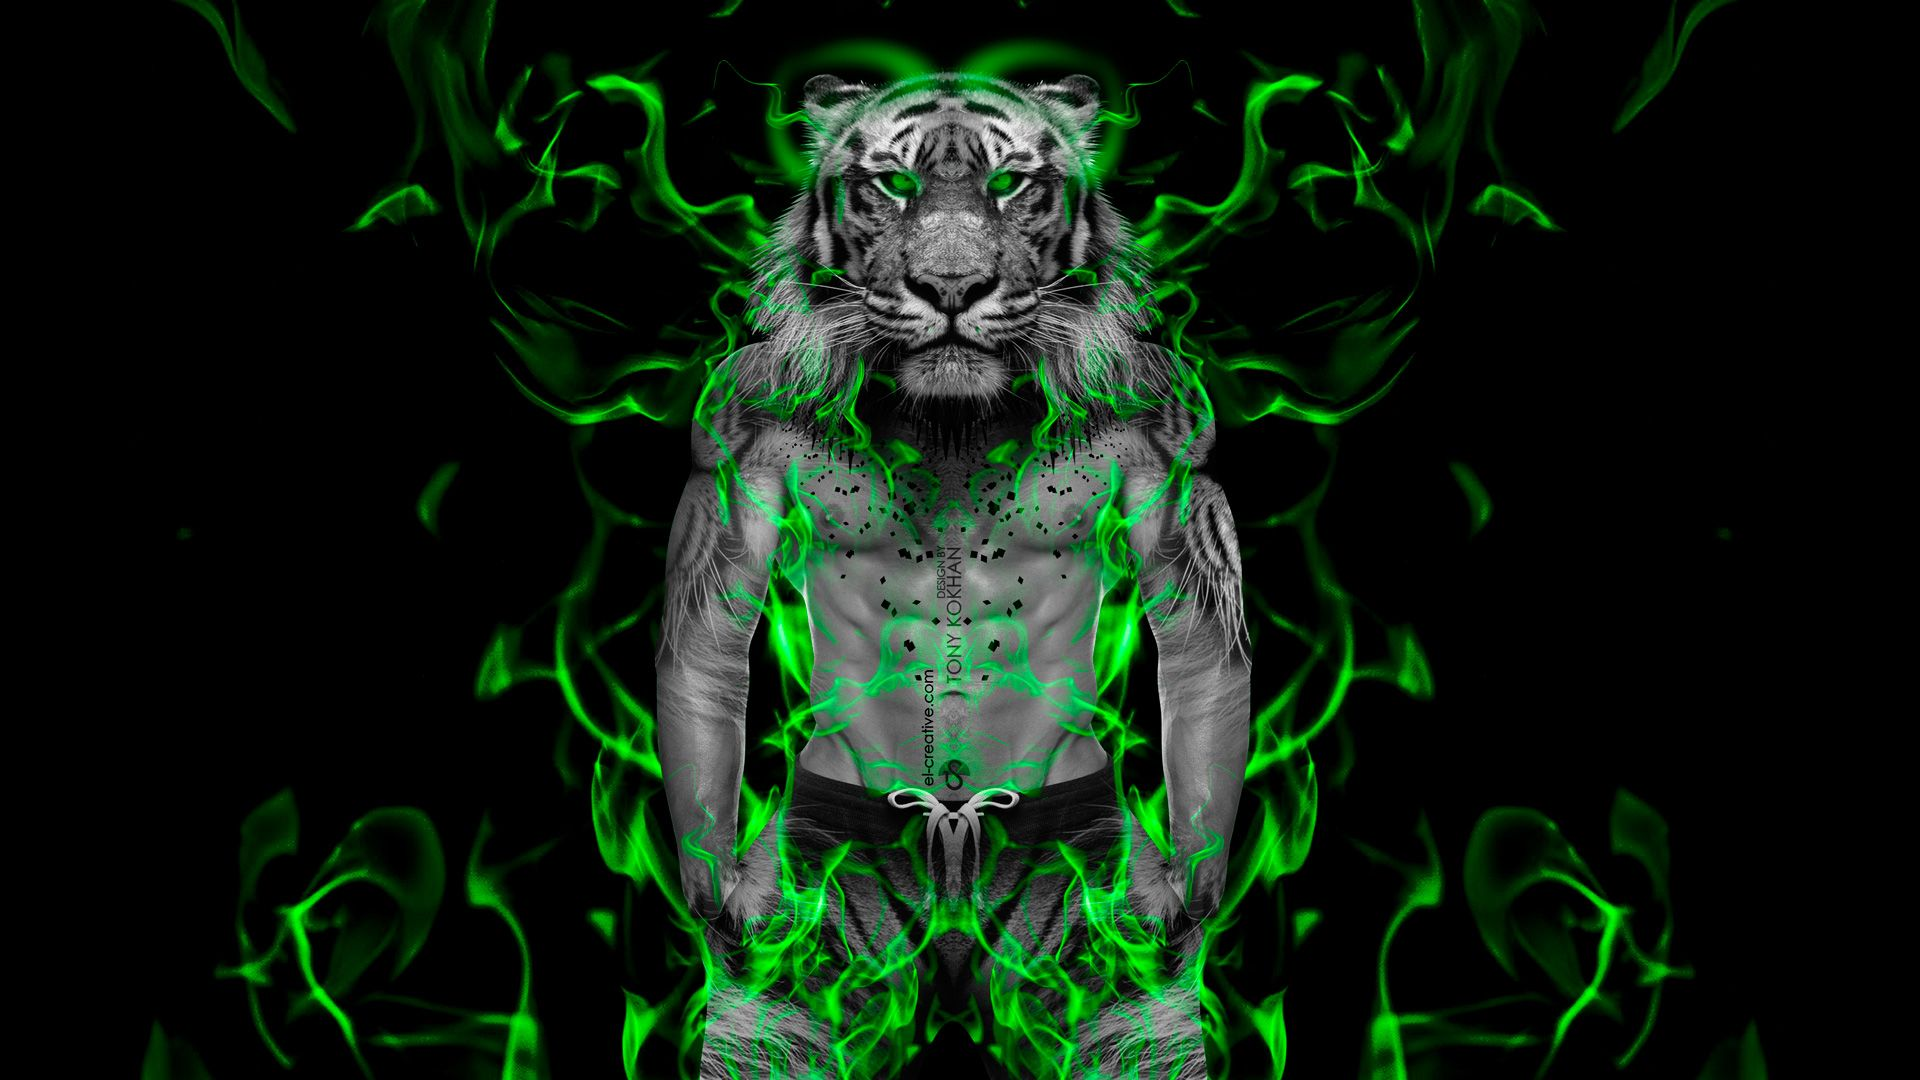 wallpapers lights singer description of green neon light tiger in